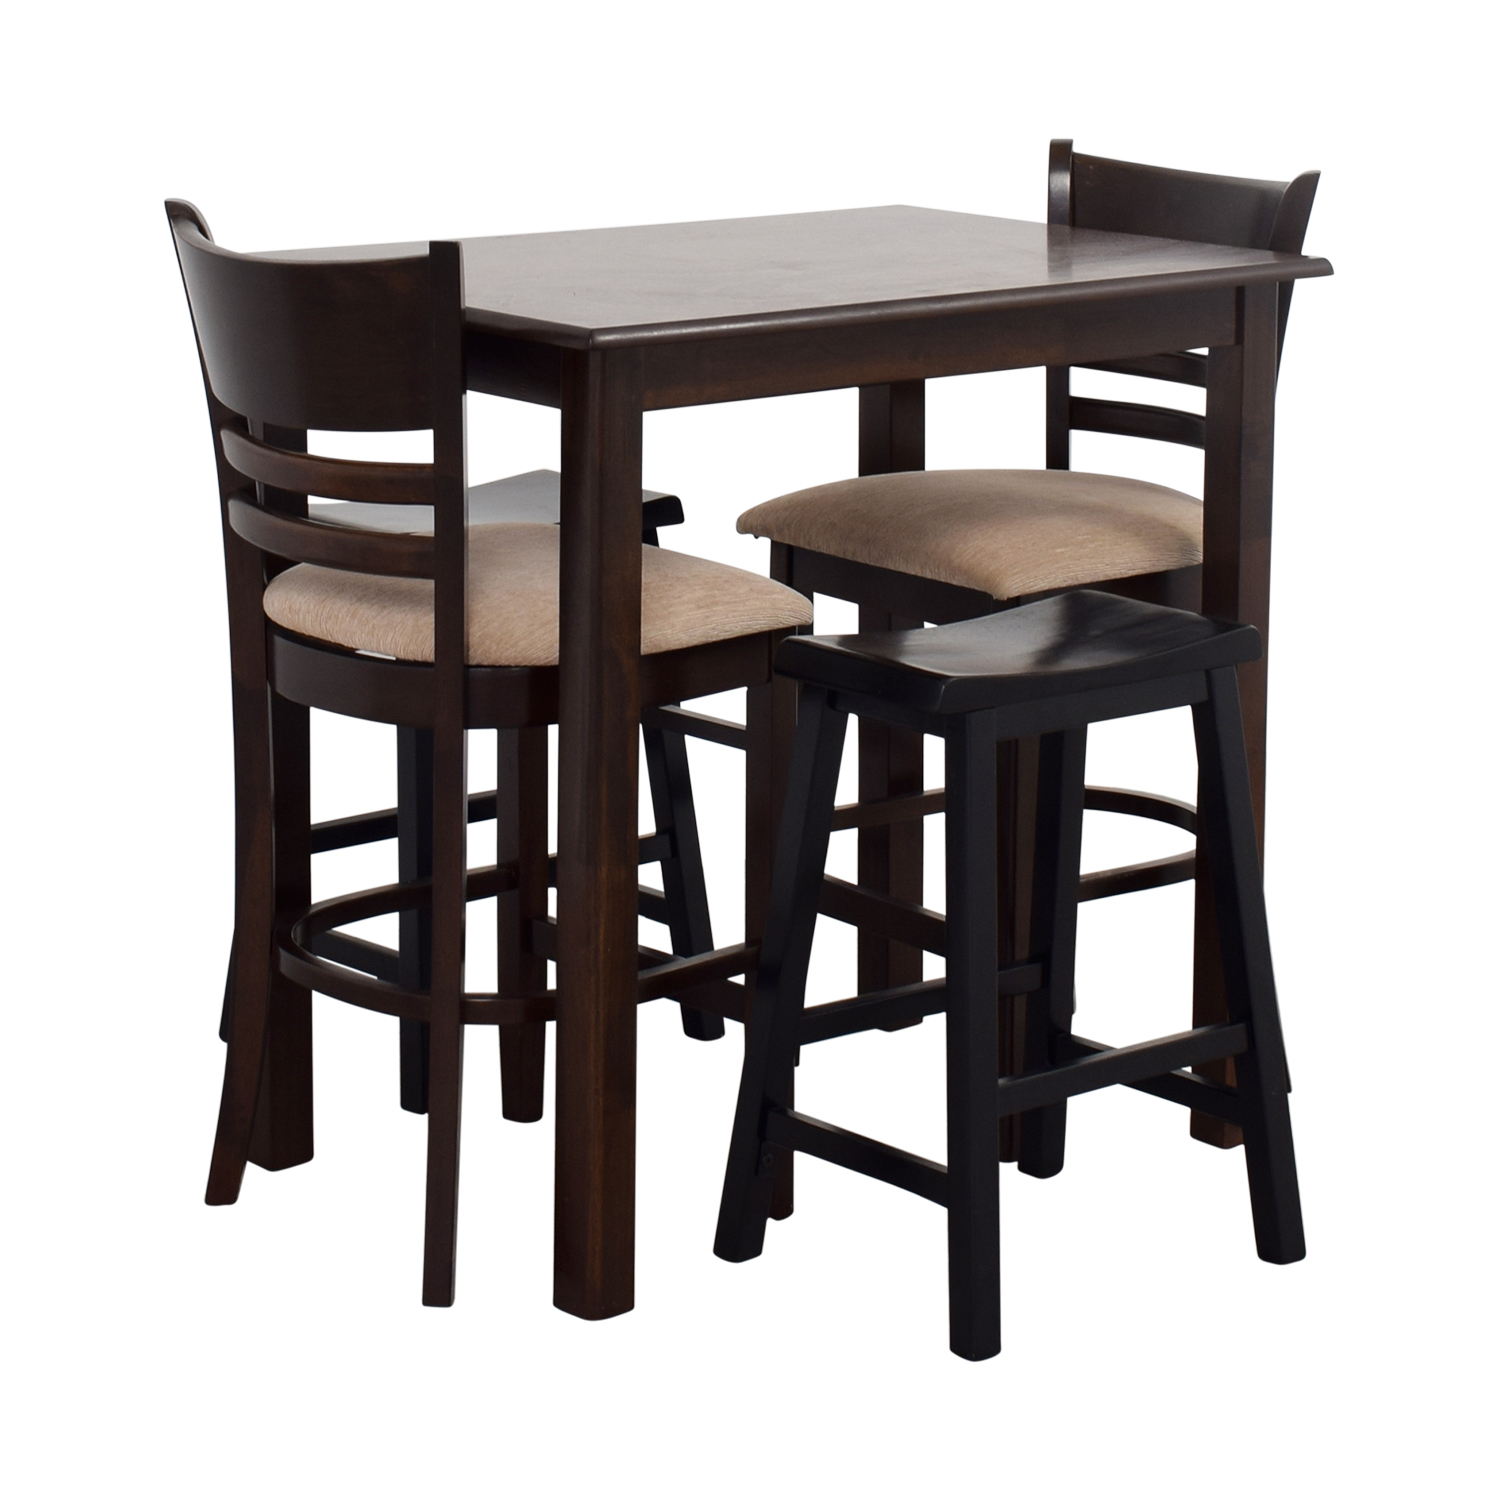 Bar Stools Table: Simple Bar Table With Two Chairs And Two Stools